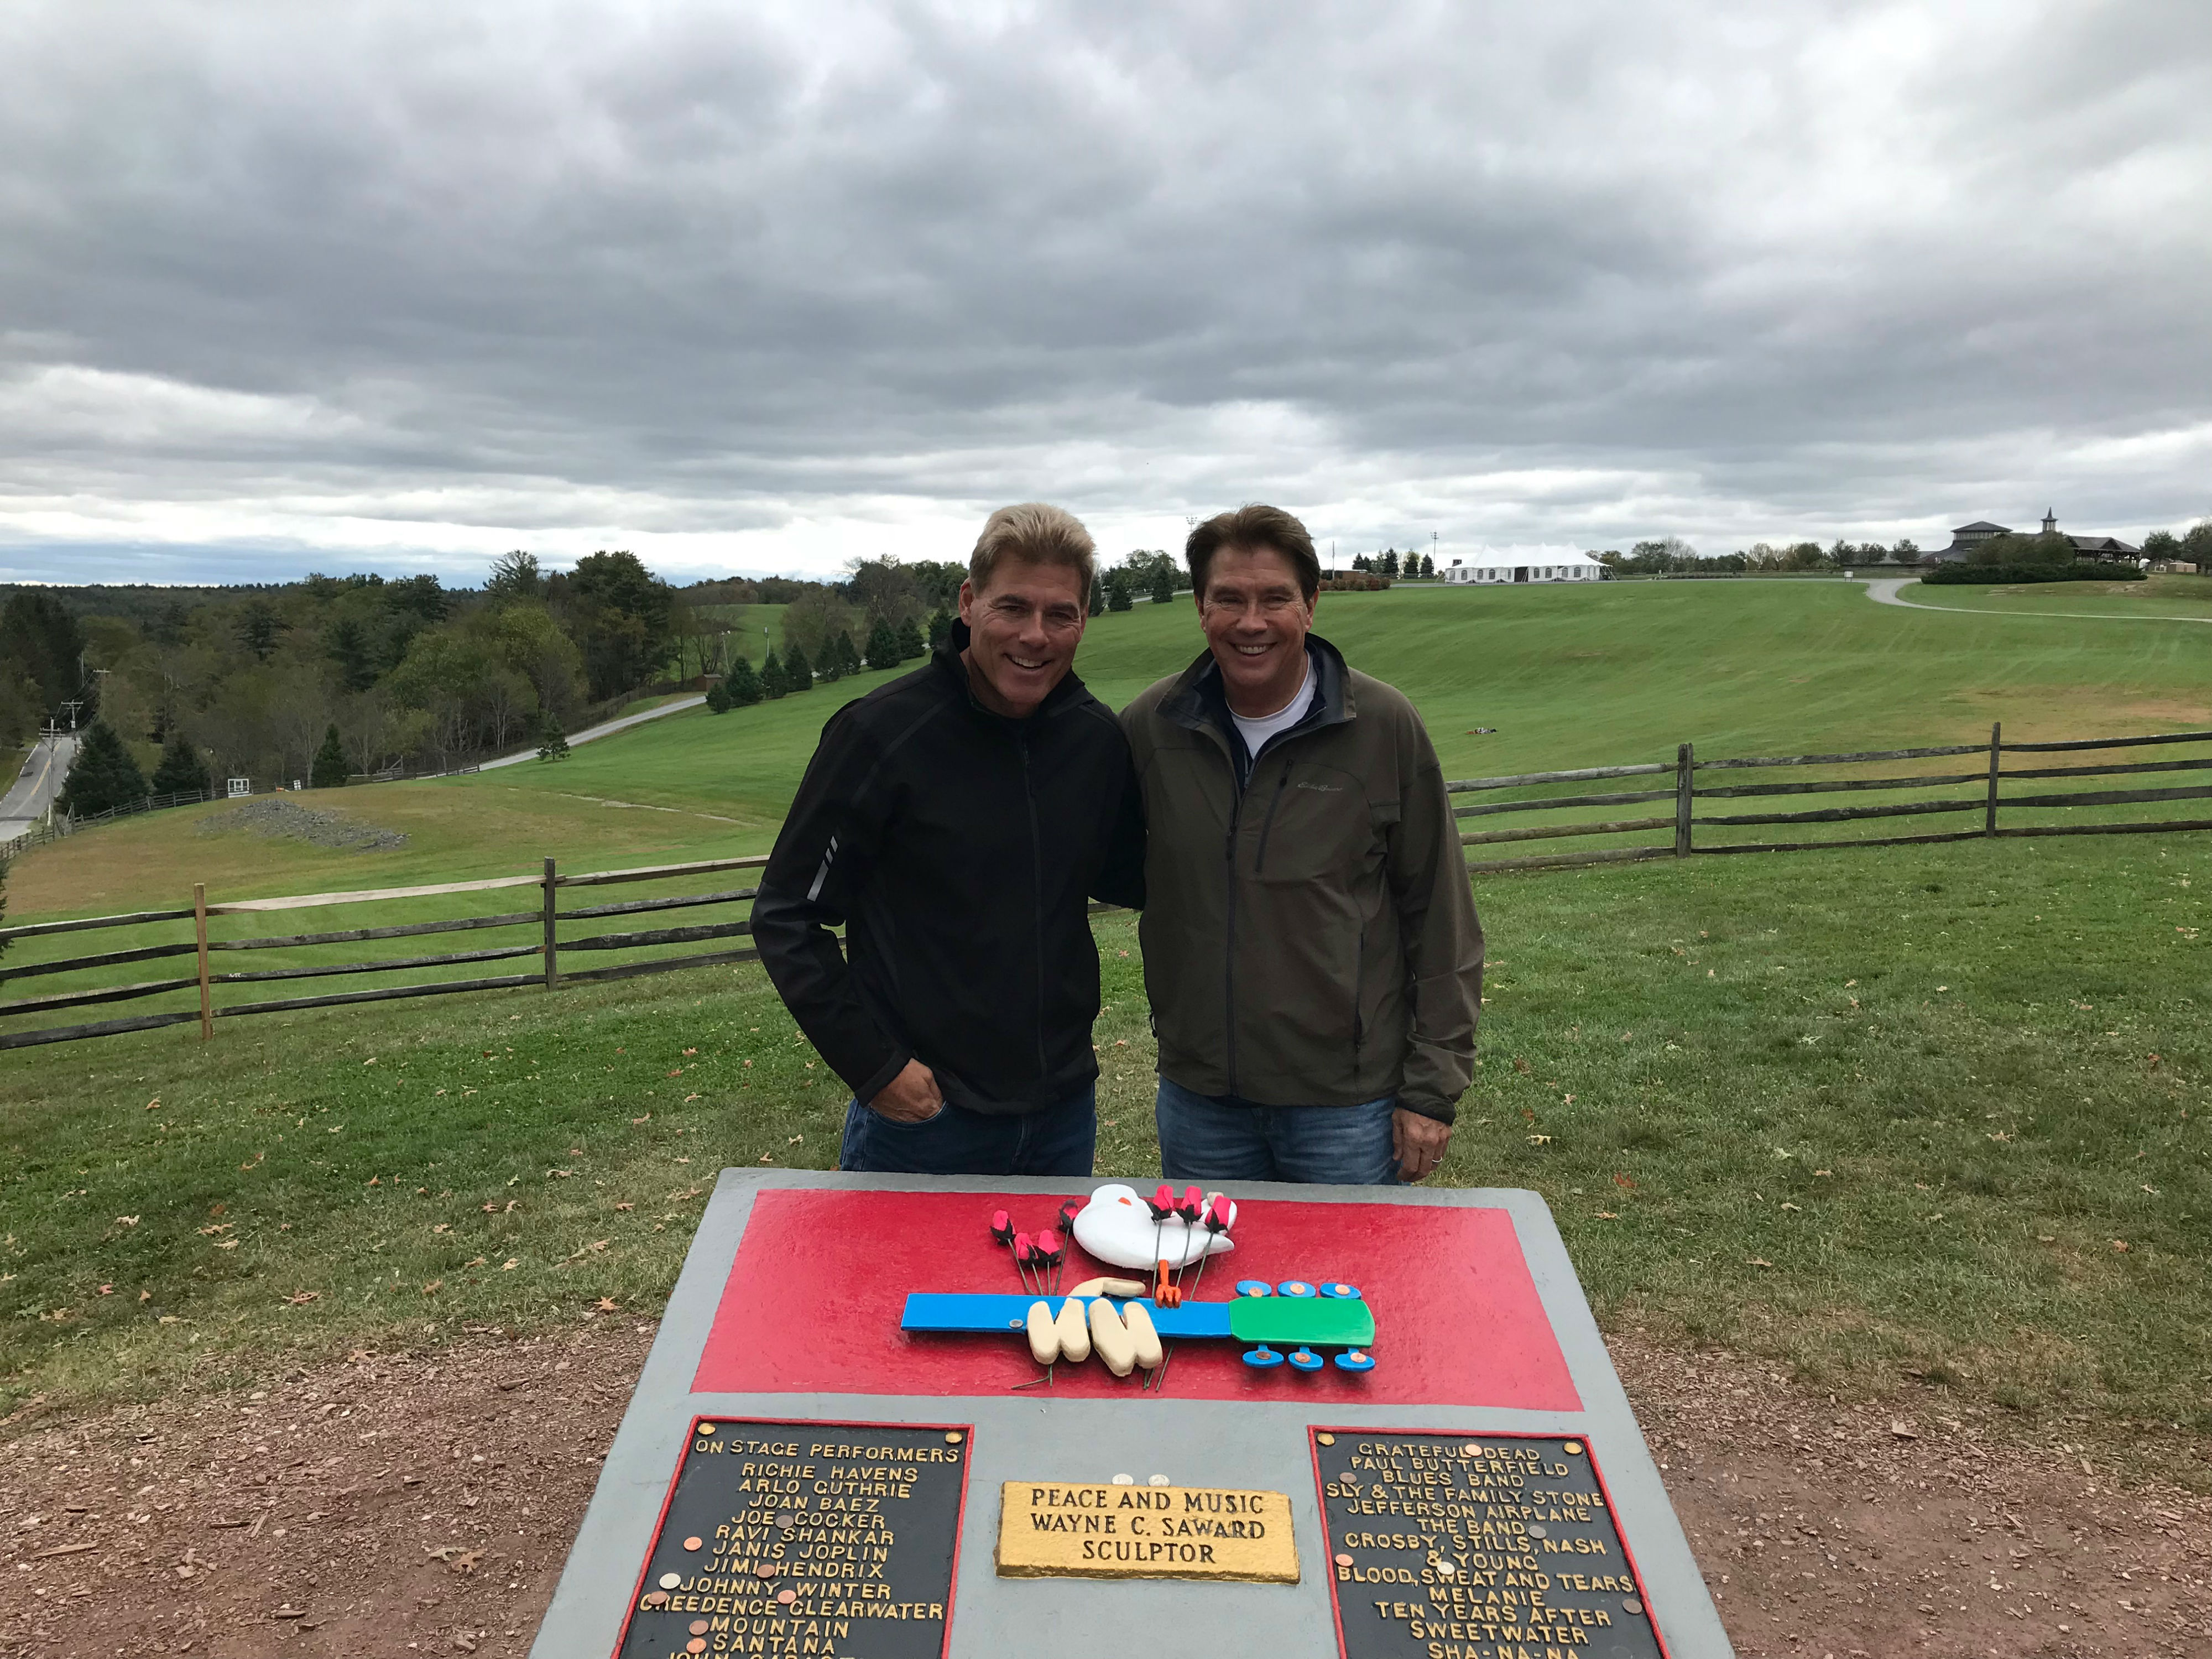 Bill Hawkins and Friend in front of Woodstock memorial